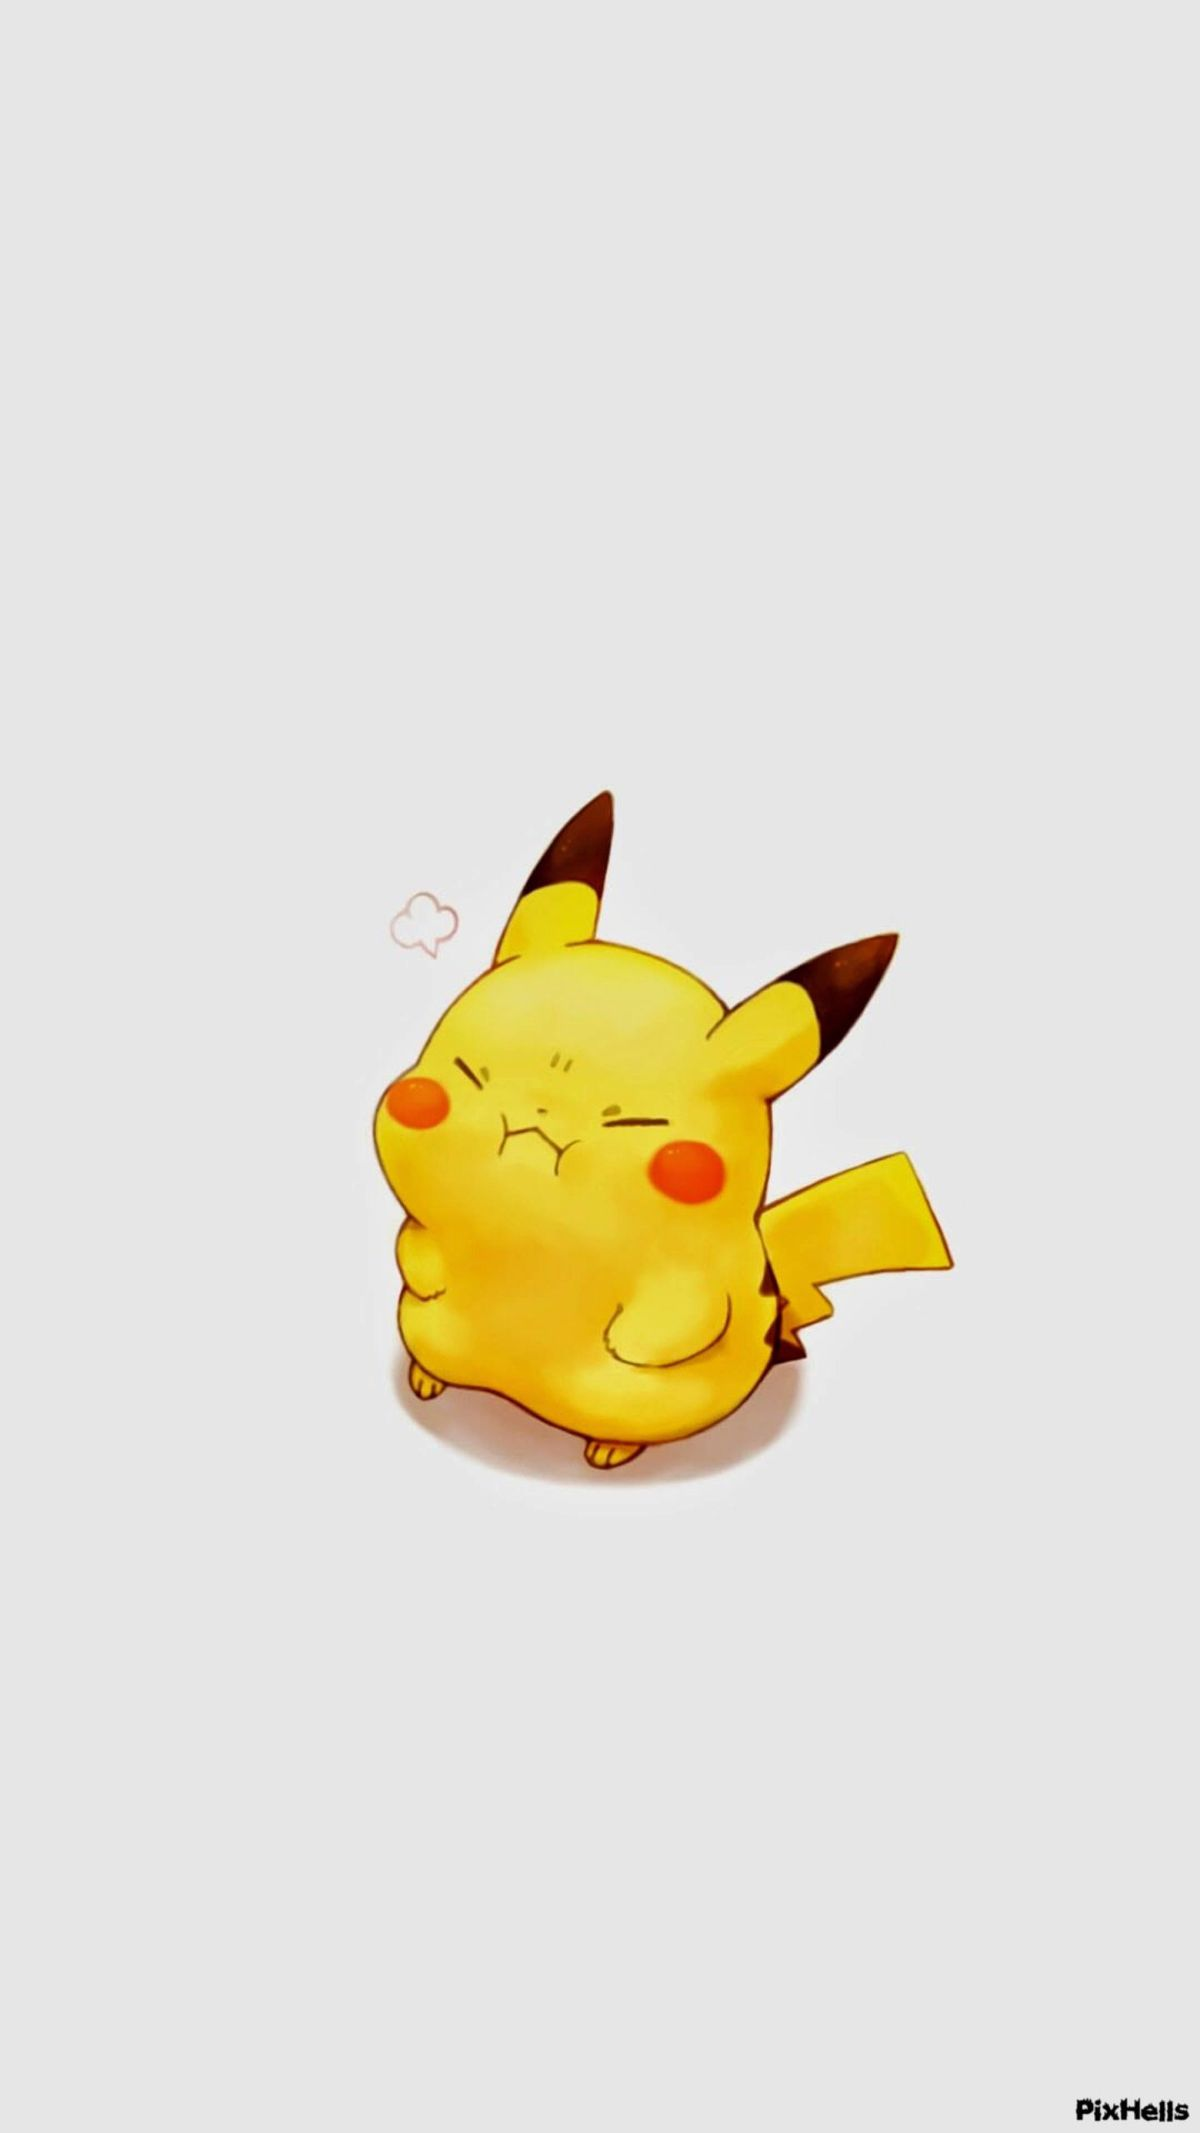 ID number of this content that belongs to the category ofPikachu Wallpapers 135119